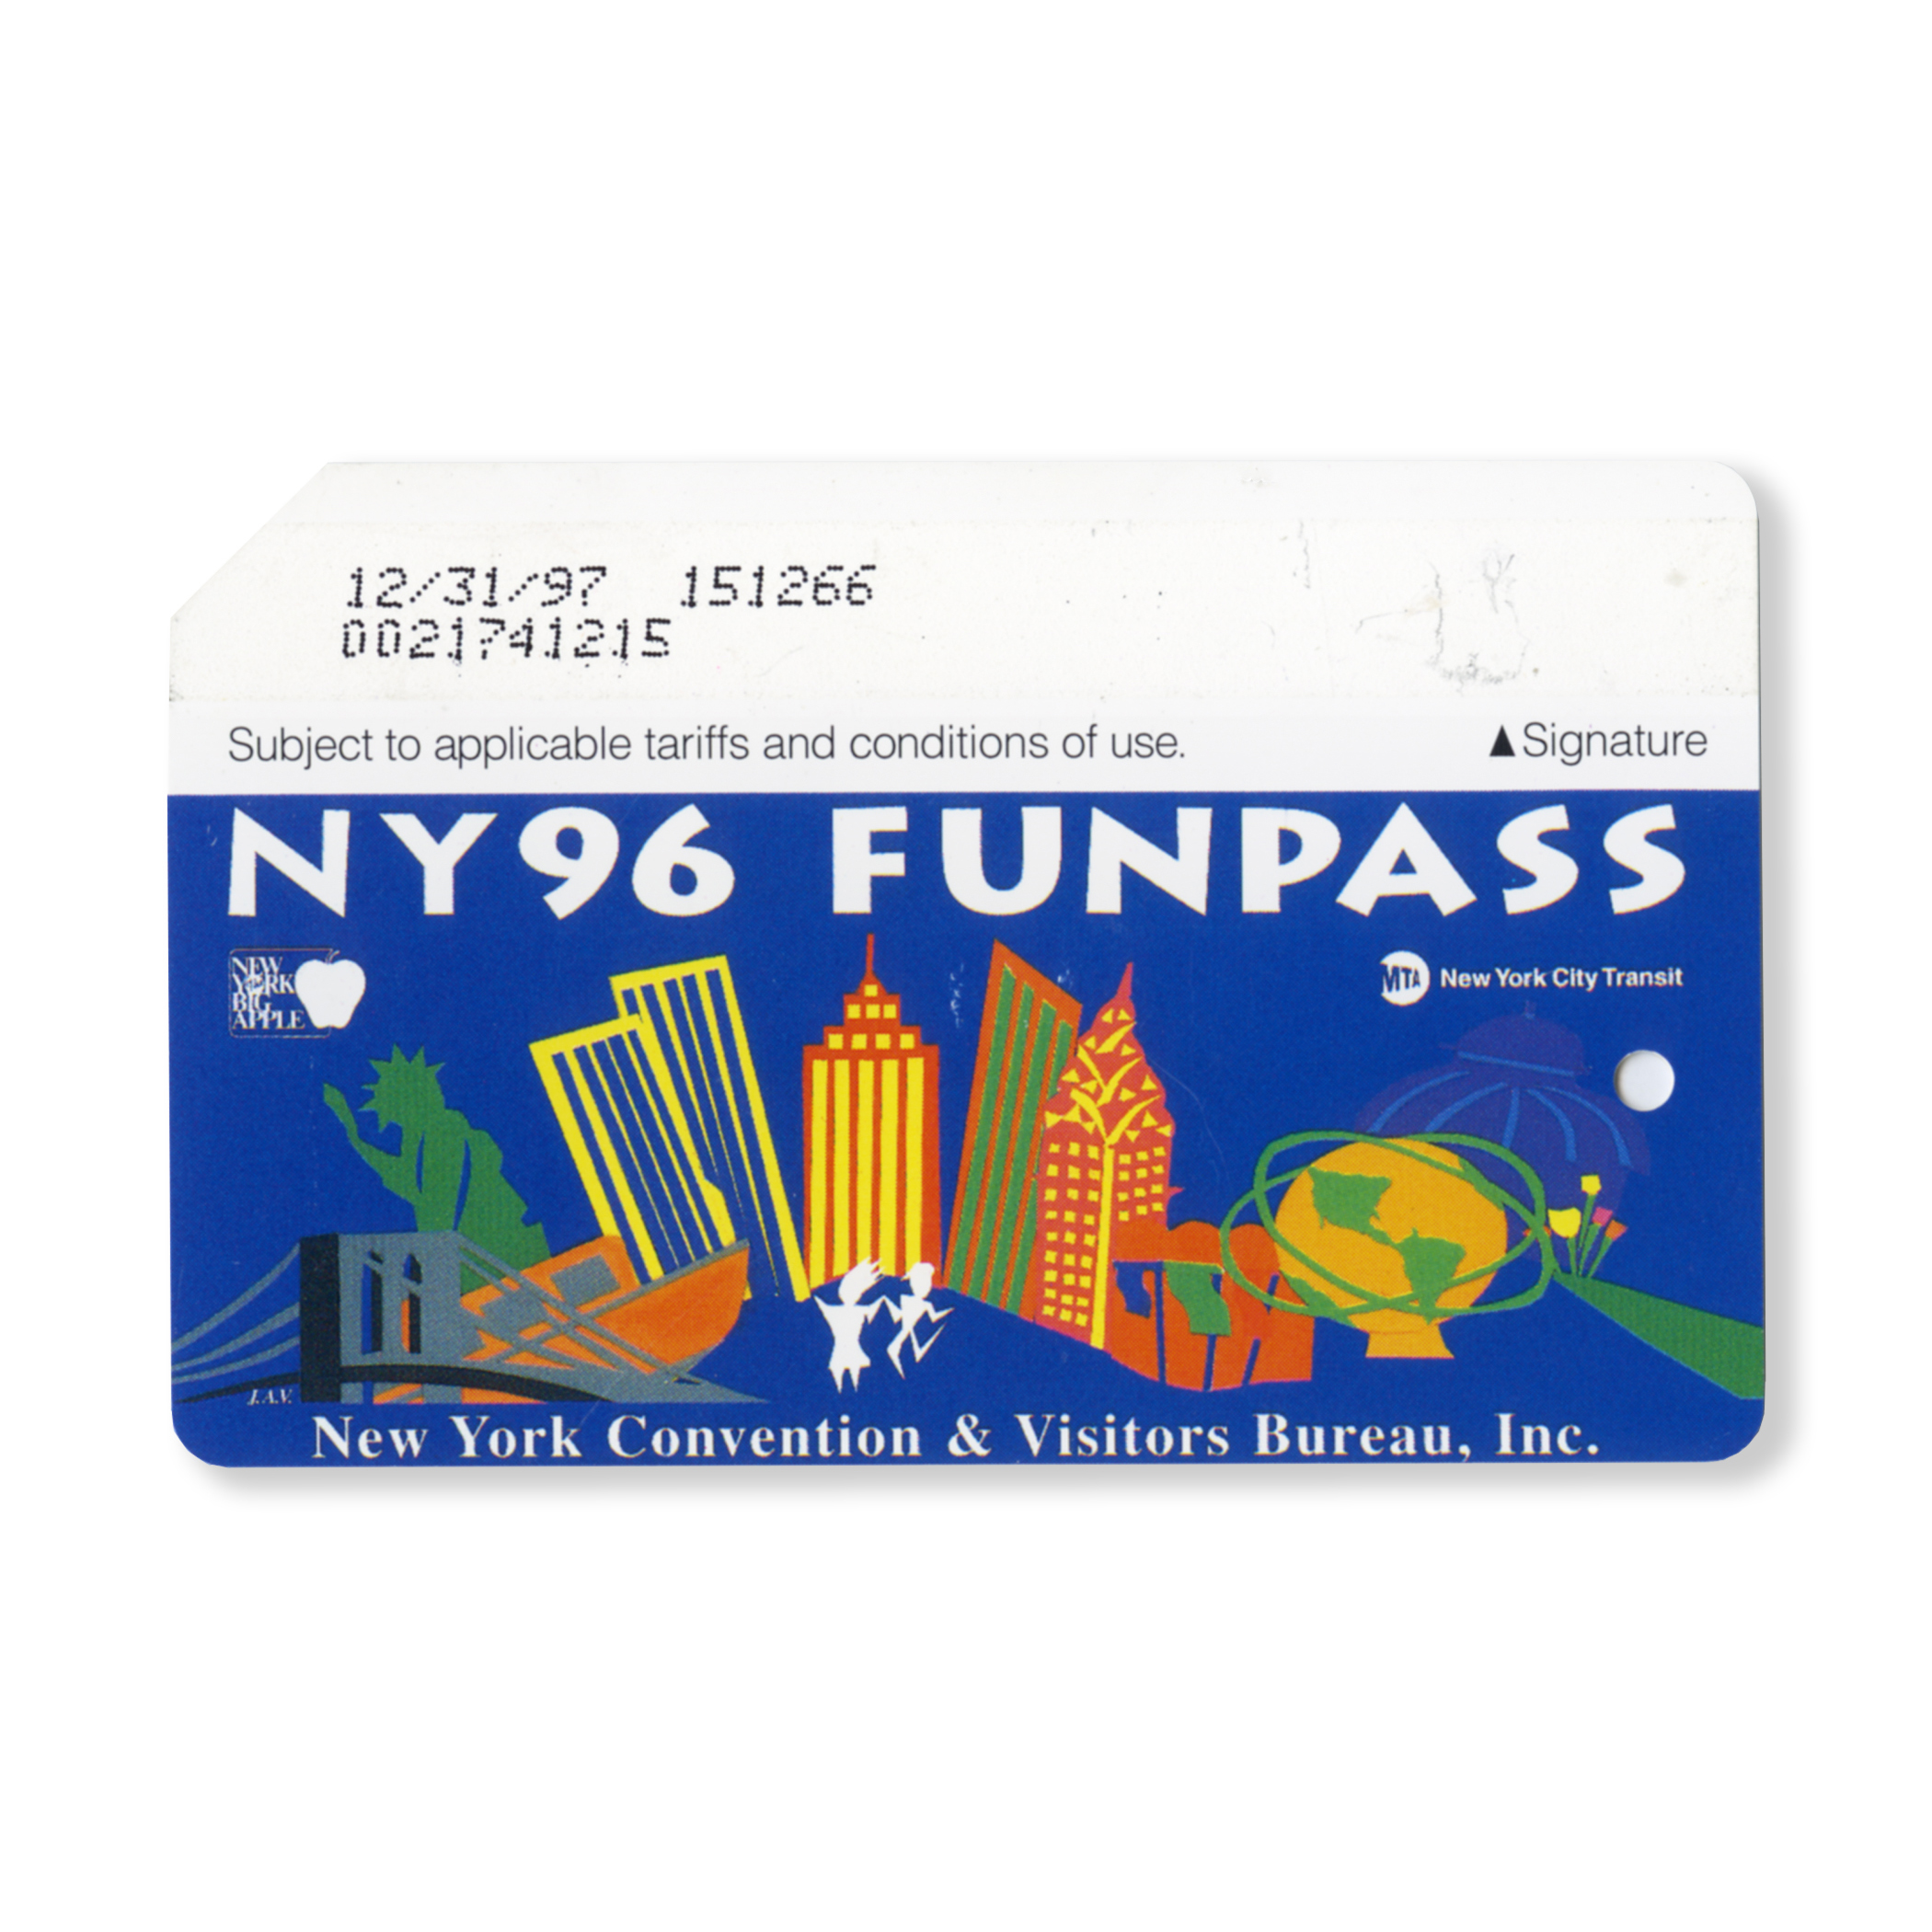 the_nycta_project_1996_funpass_metrocard.jpg